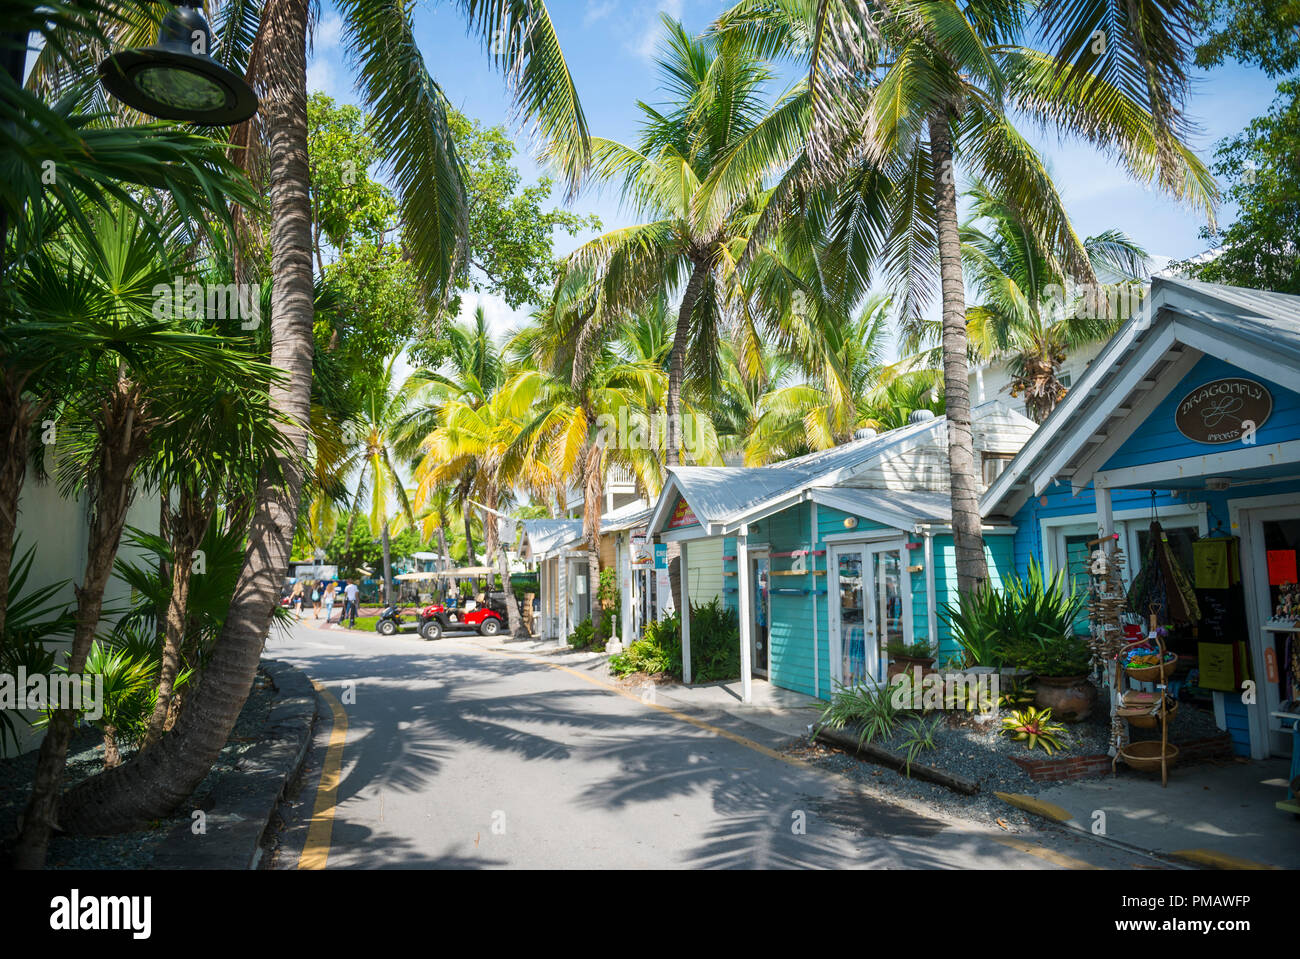 KEY WEST, USA - CIRCA SEPTEMBER, 2018: Quaint palm and shack lined waterfront street - Stock Image